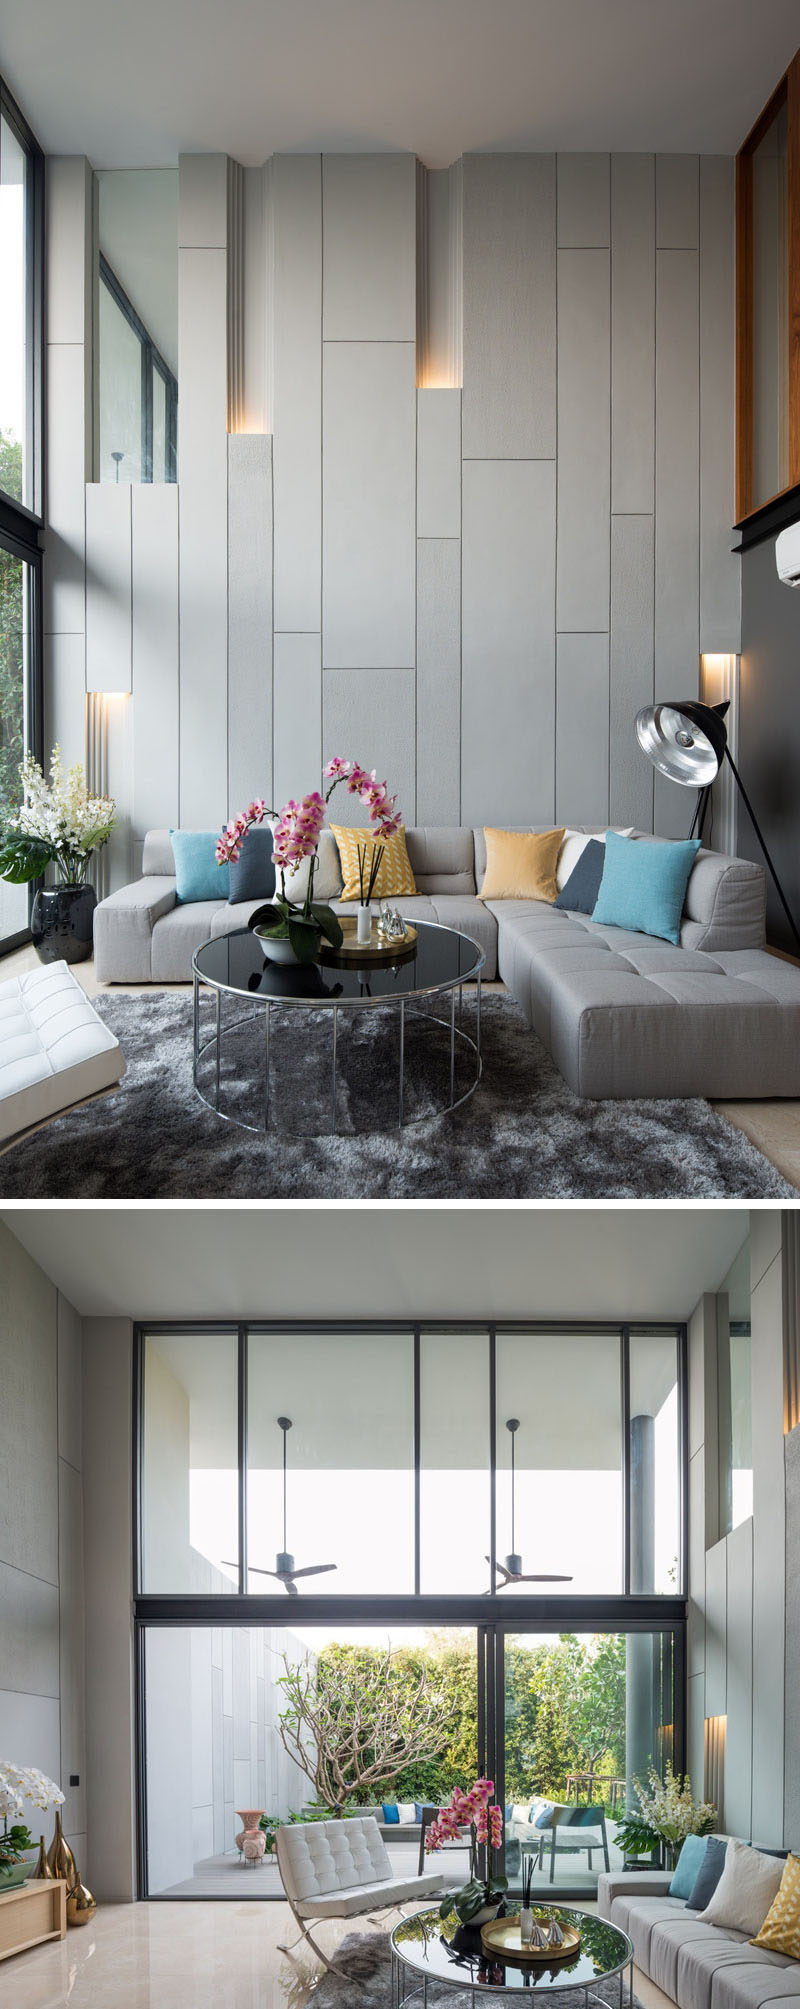 In this modern living room, the double-height space has large windows that look out onto the backyard. The wall behind the couch has built-in lighting to break up the solid wall, as well as helping to creating a unique atmosphere.